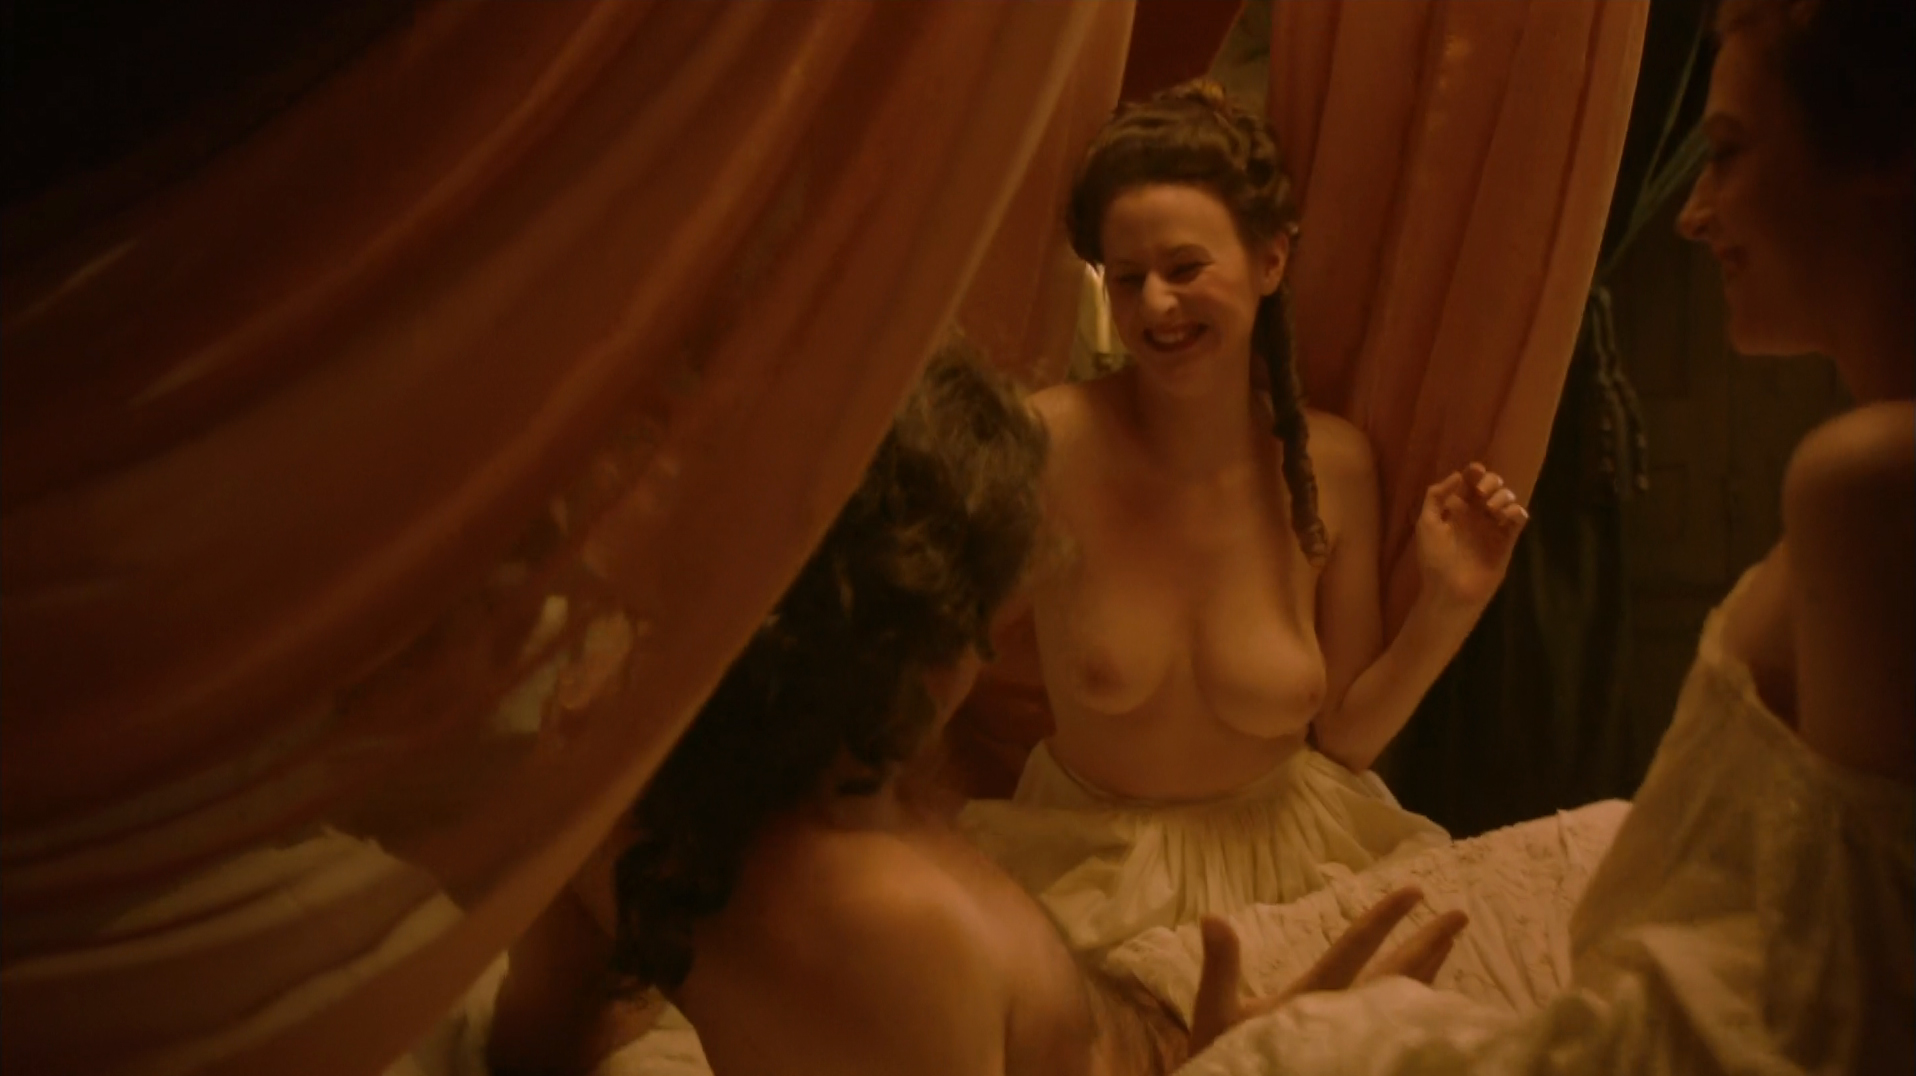 Pussy galore nude